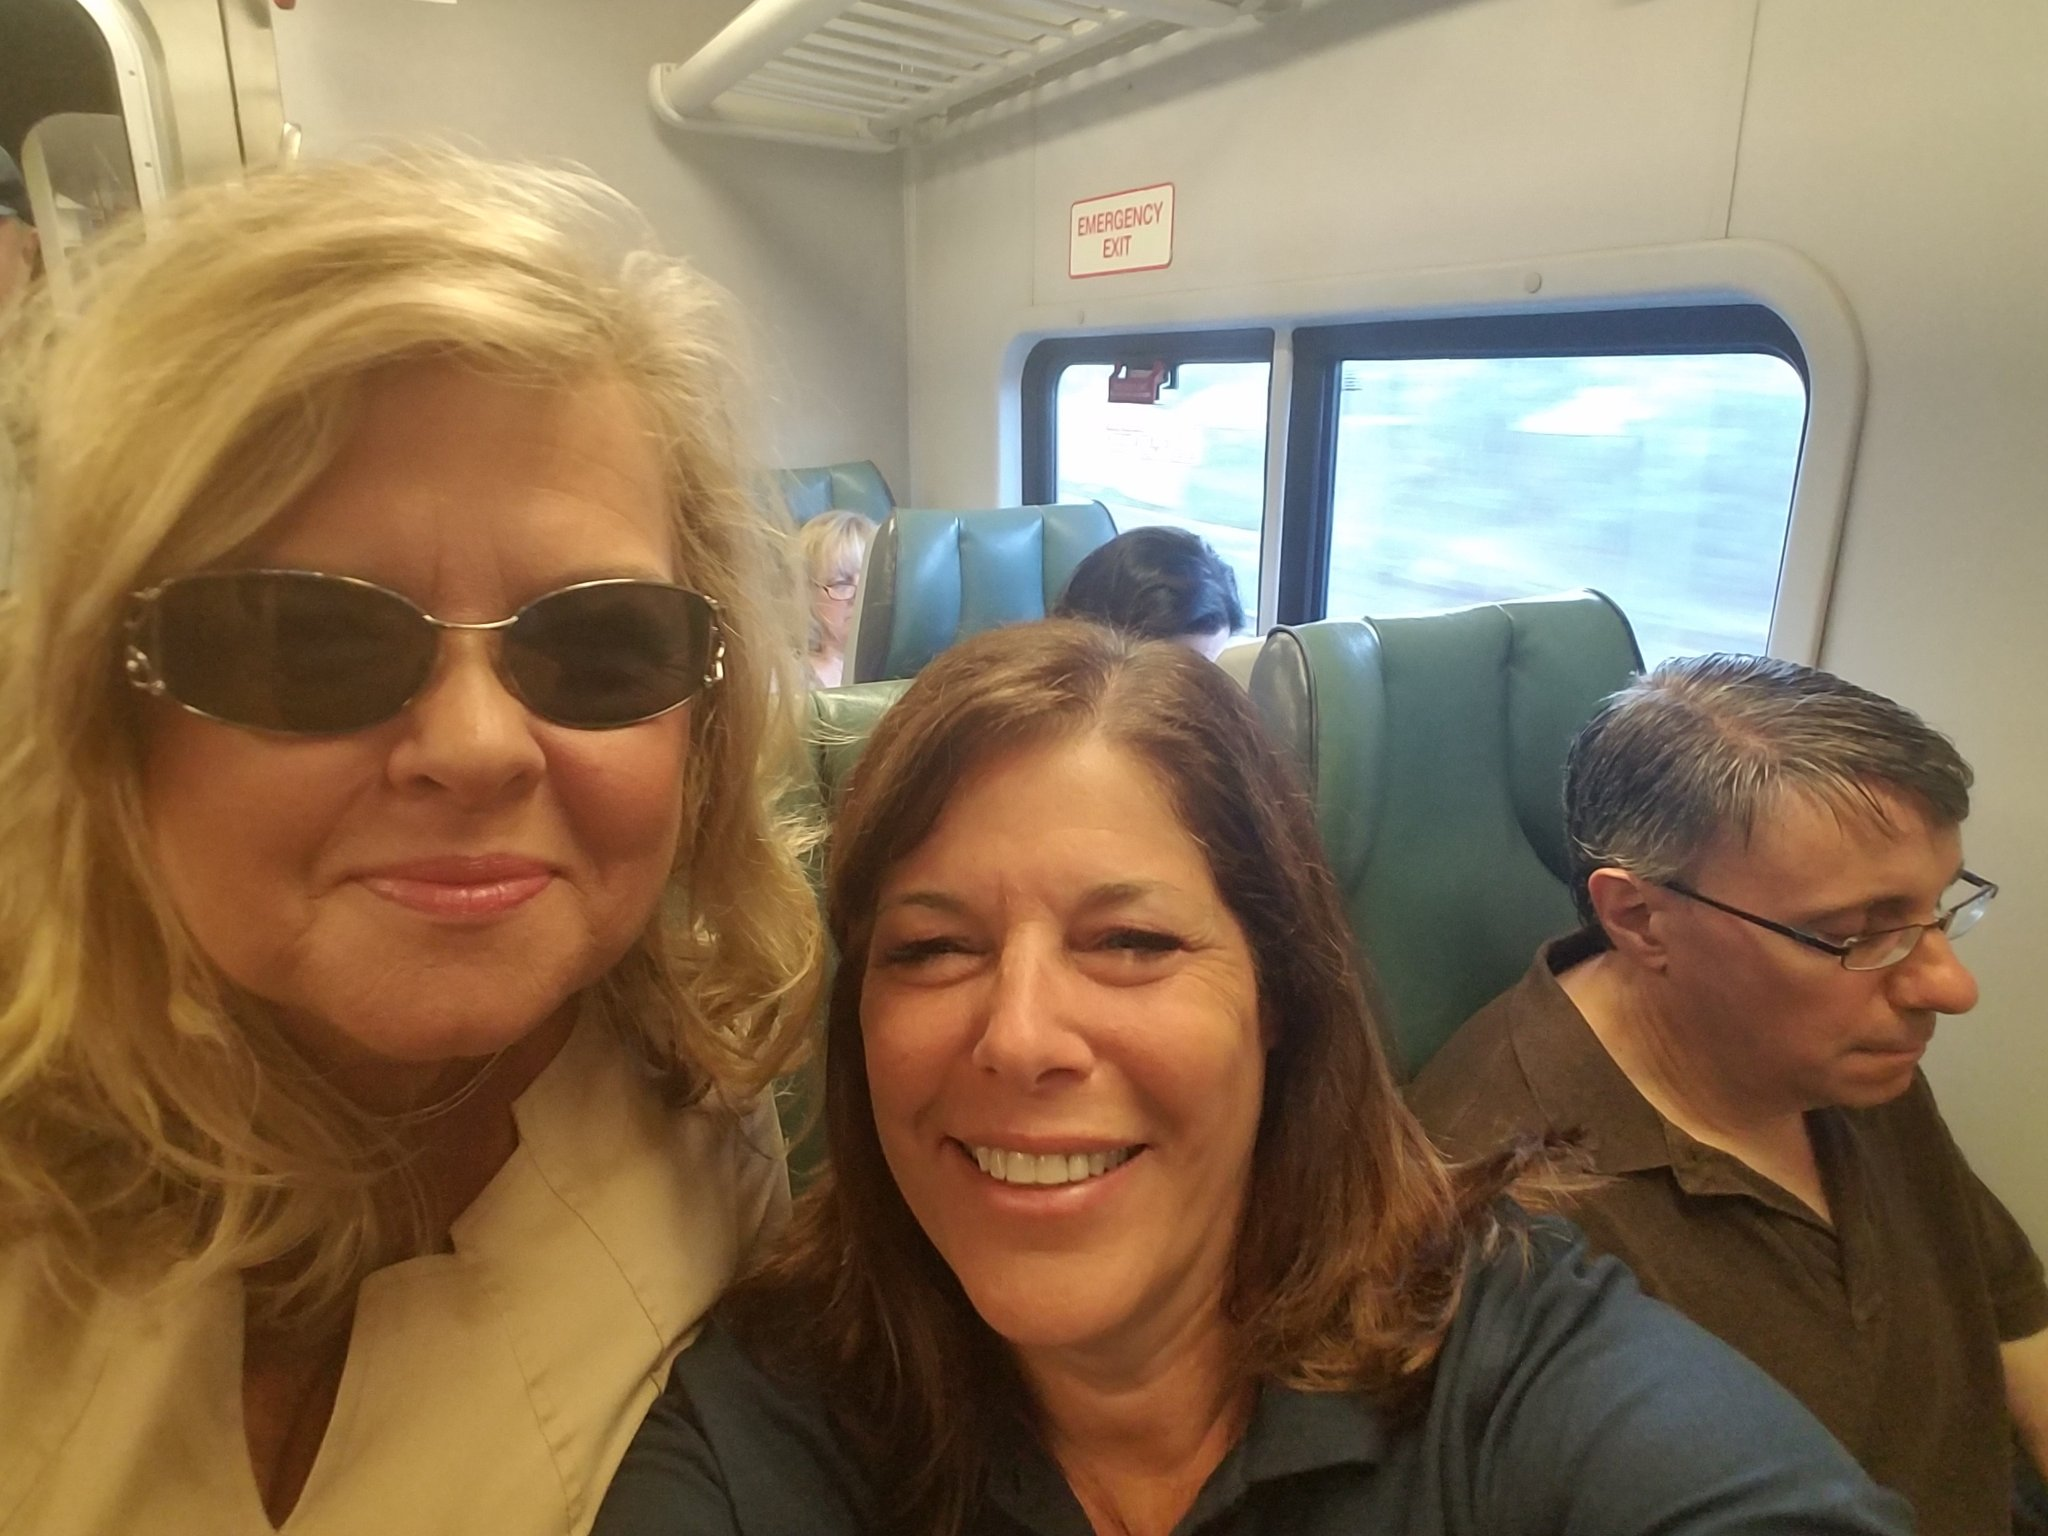 Random meet on LIRR train great start #NYCSchoolsTech https://t.co/mzMTLPyWRh